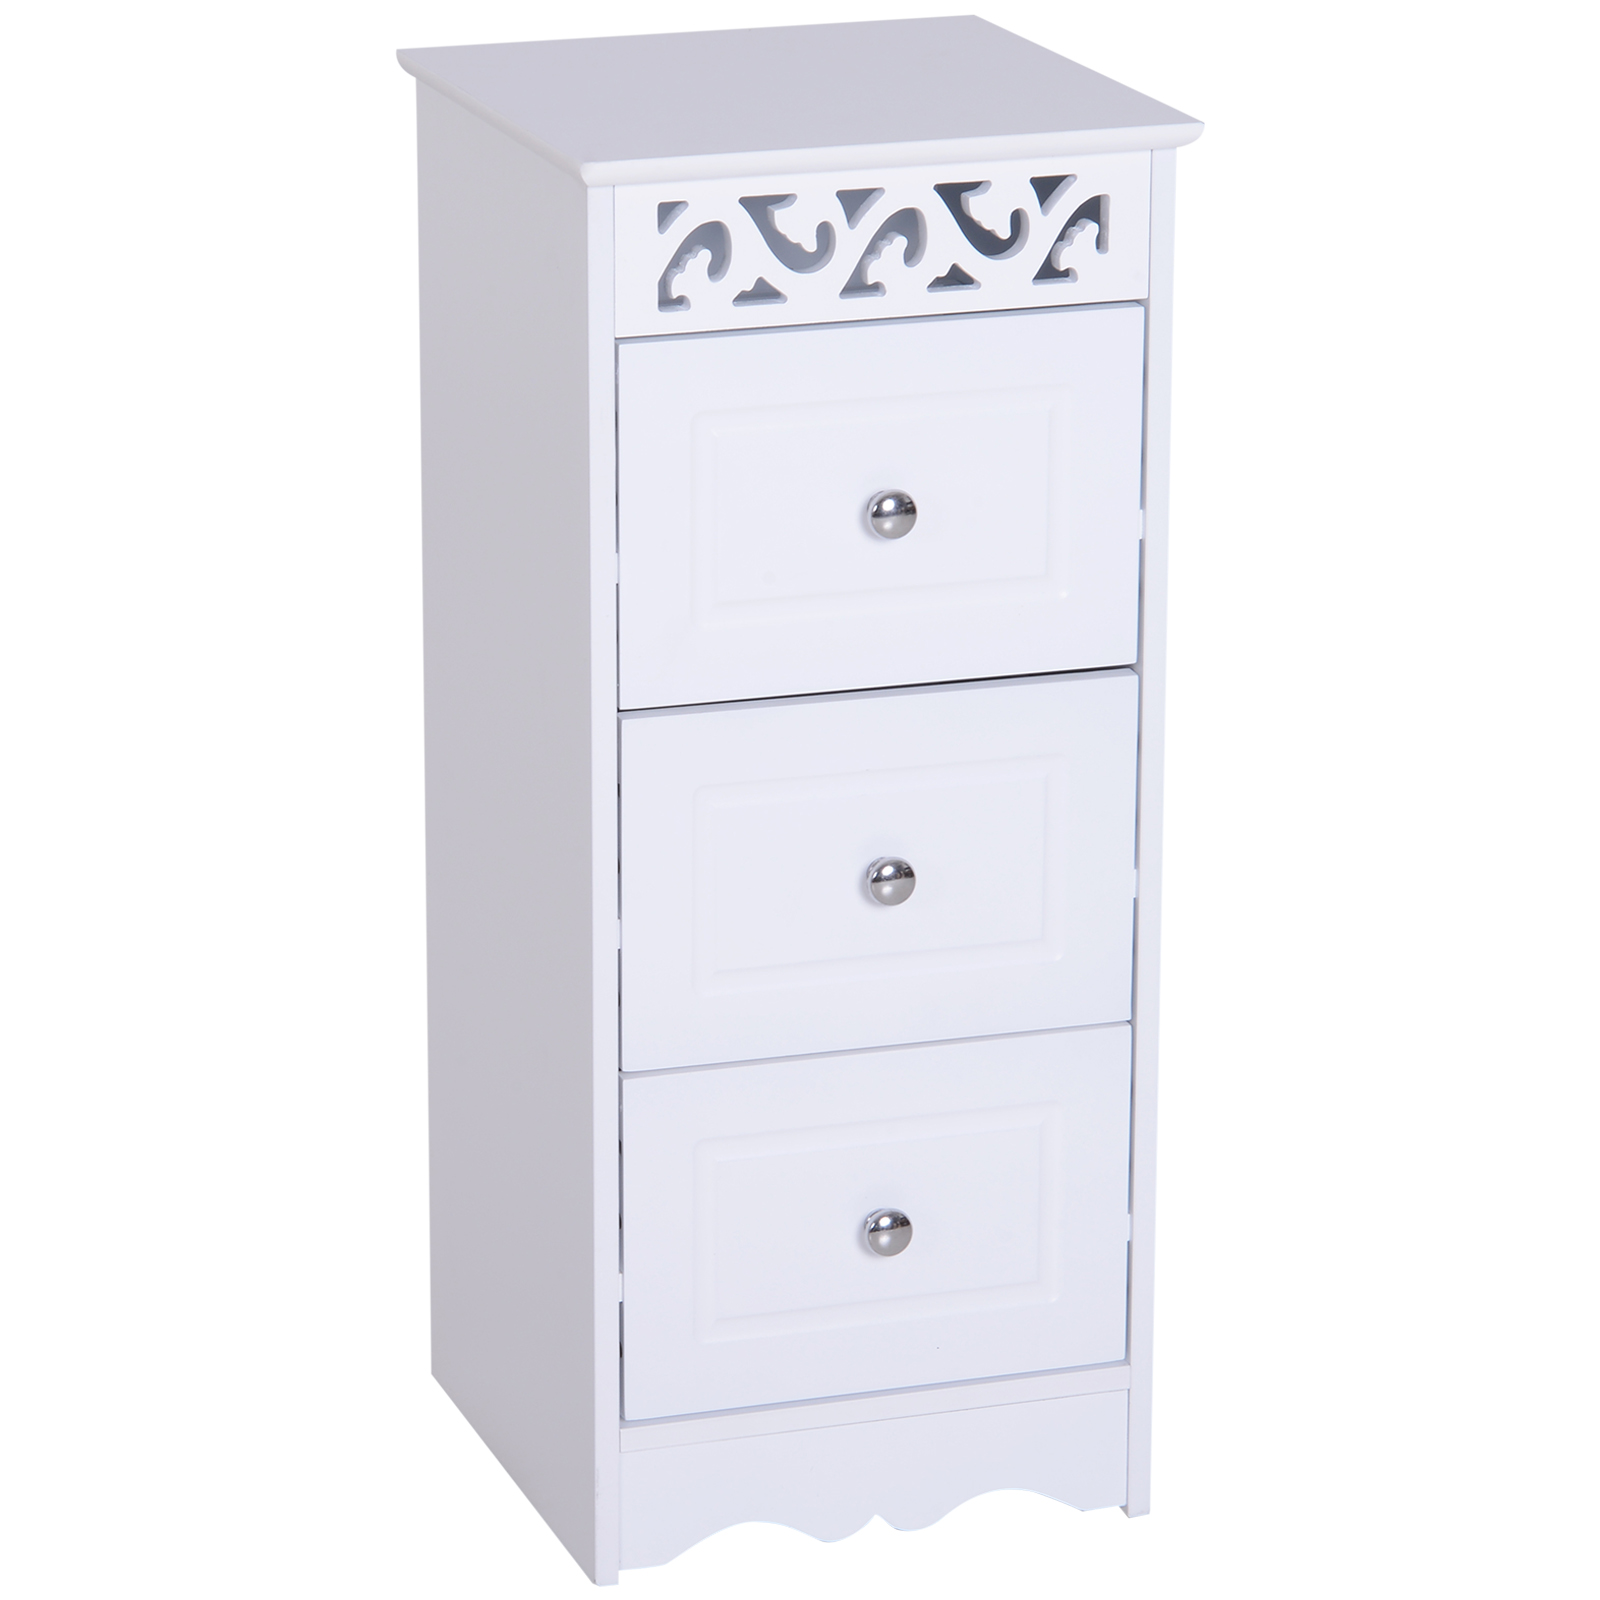 Bathroom-Cabinet-Corner-Shelf-Unit-Drawers-Tower-Cupboard-Wood-Storage-White thumbnail 11